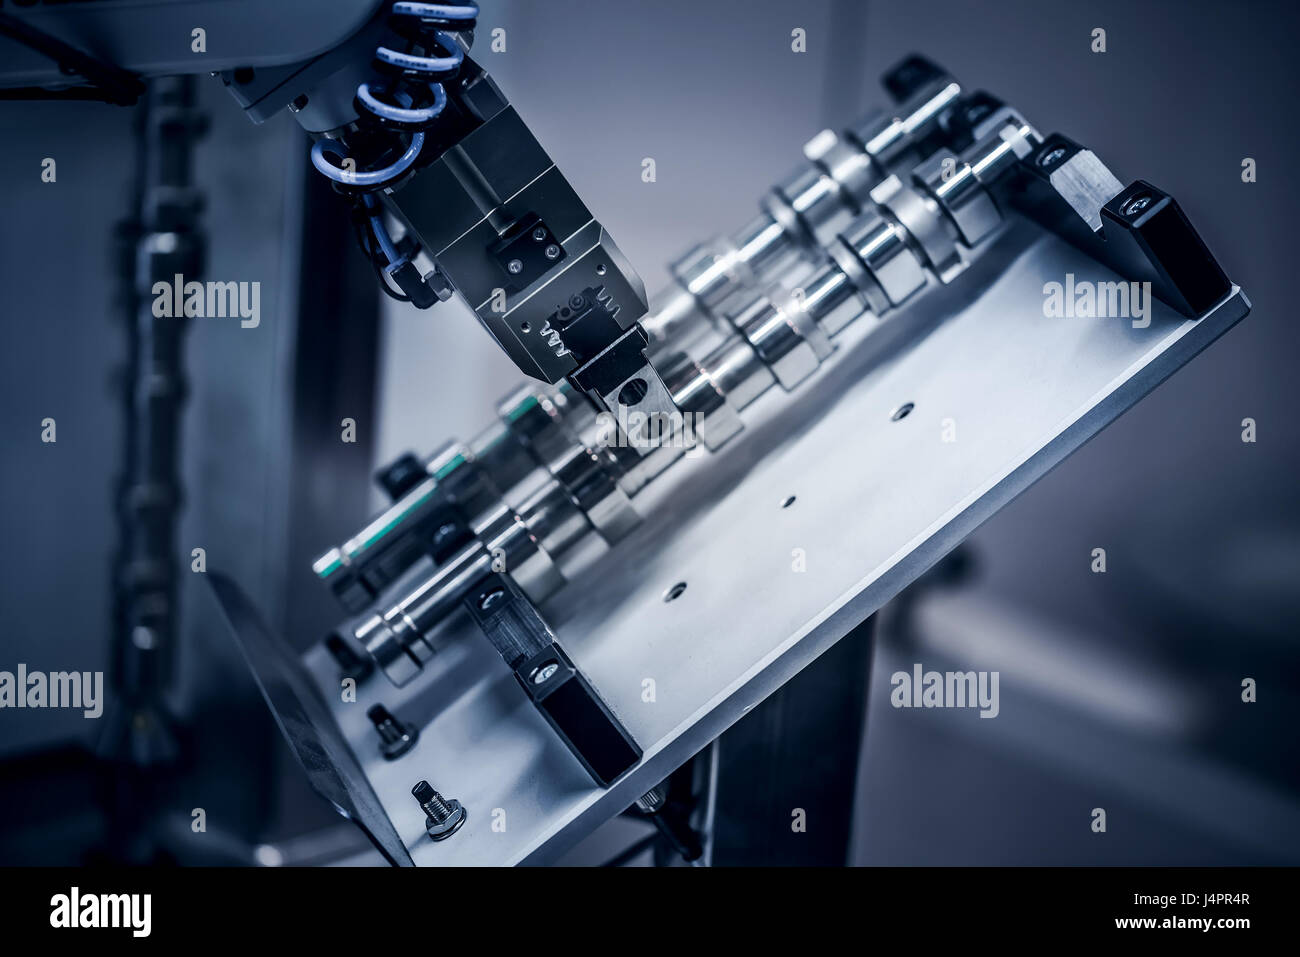 Robotic Arm production lines - Stock Image